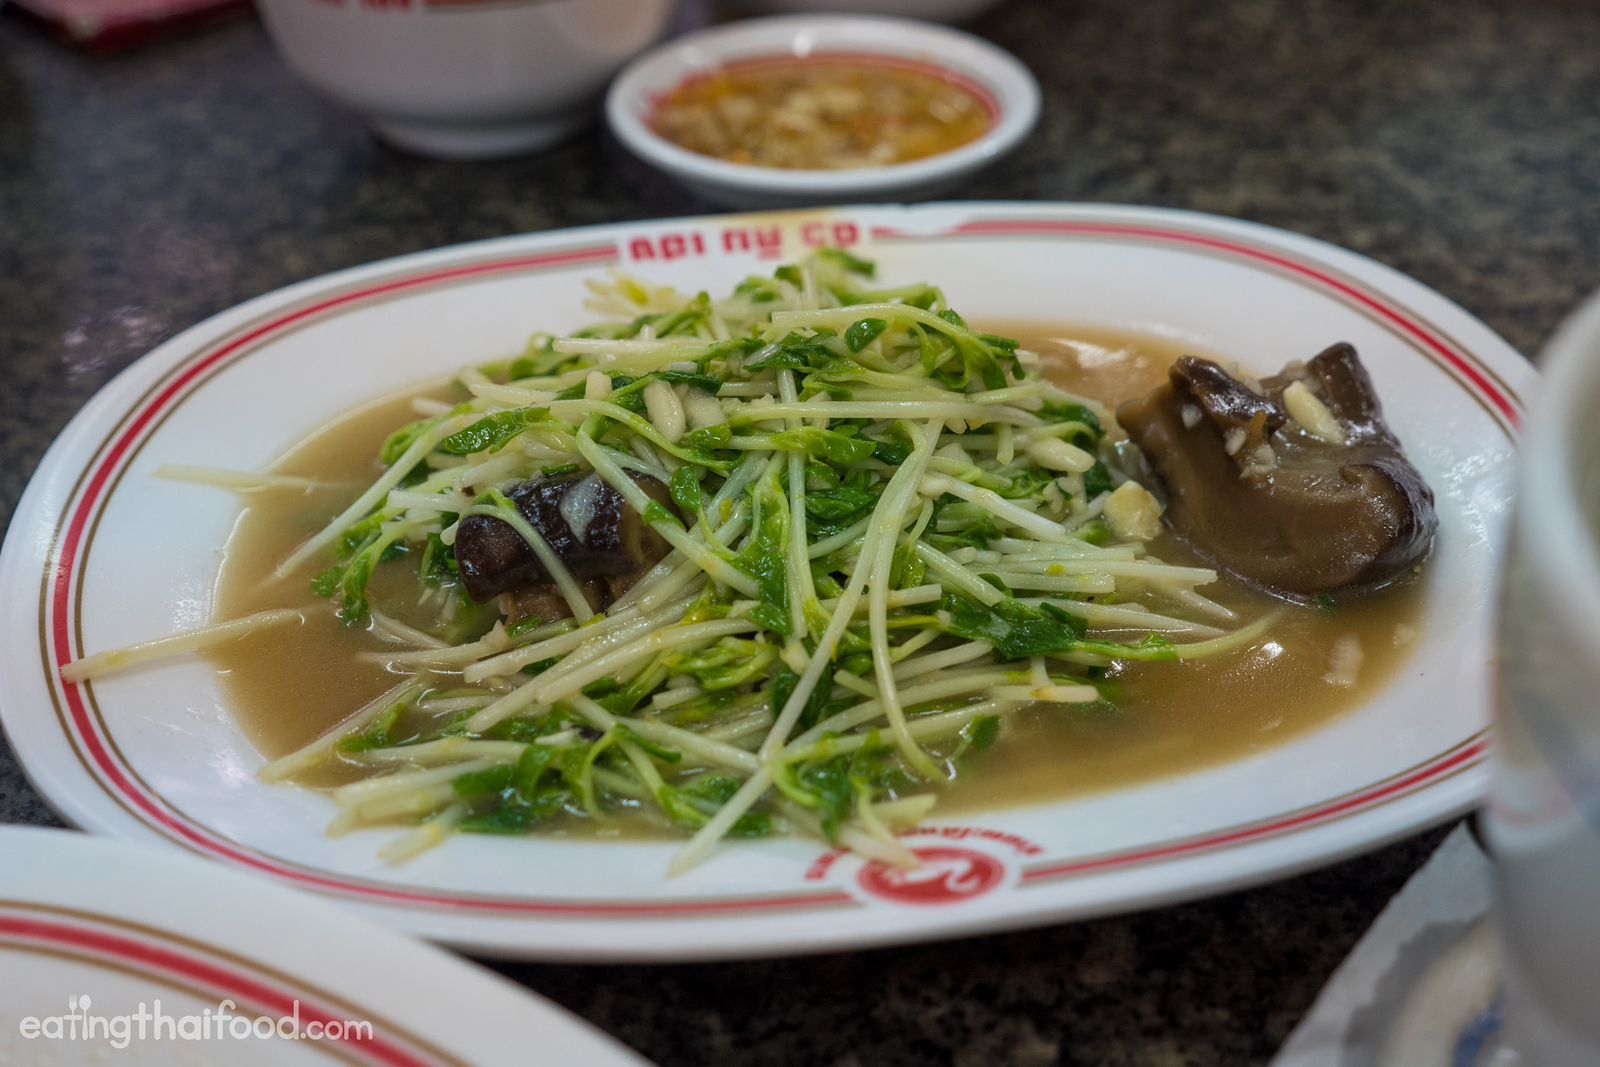 Pea shoots with oyster sauce (dow meow nam man hoy โต้วเหมี่ยวน้ำมันหอย)